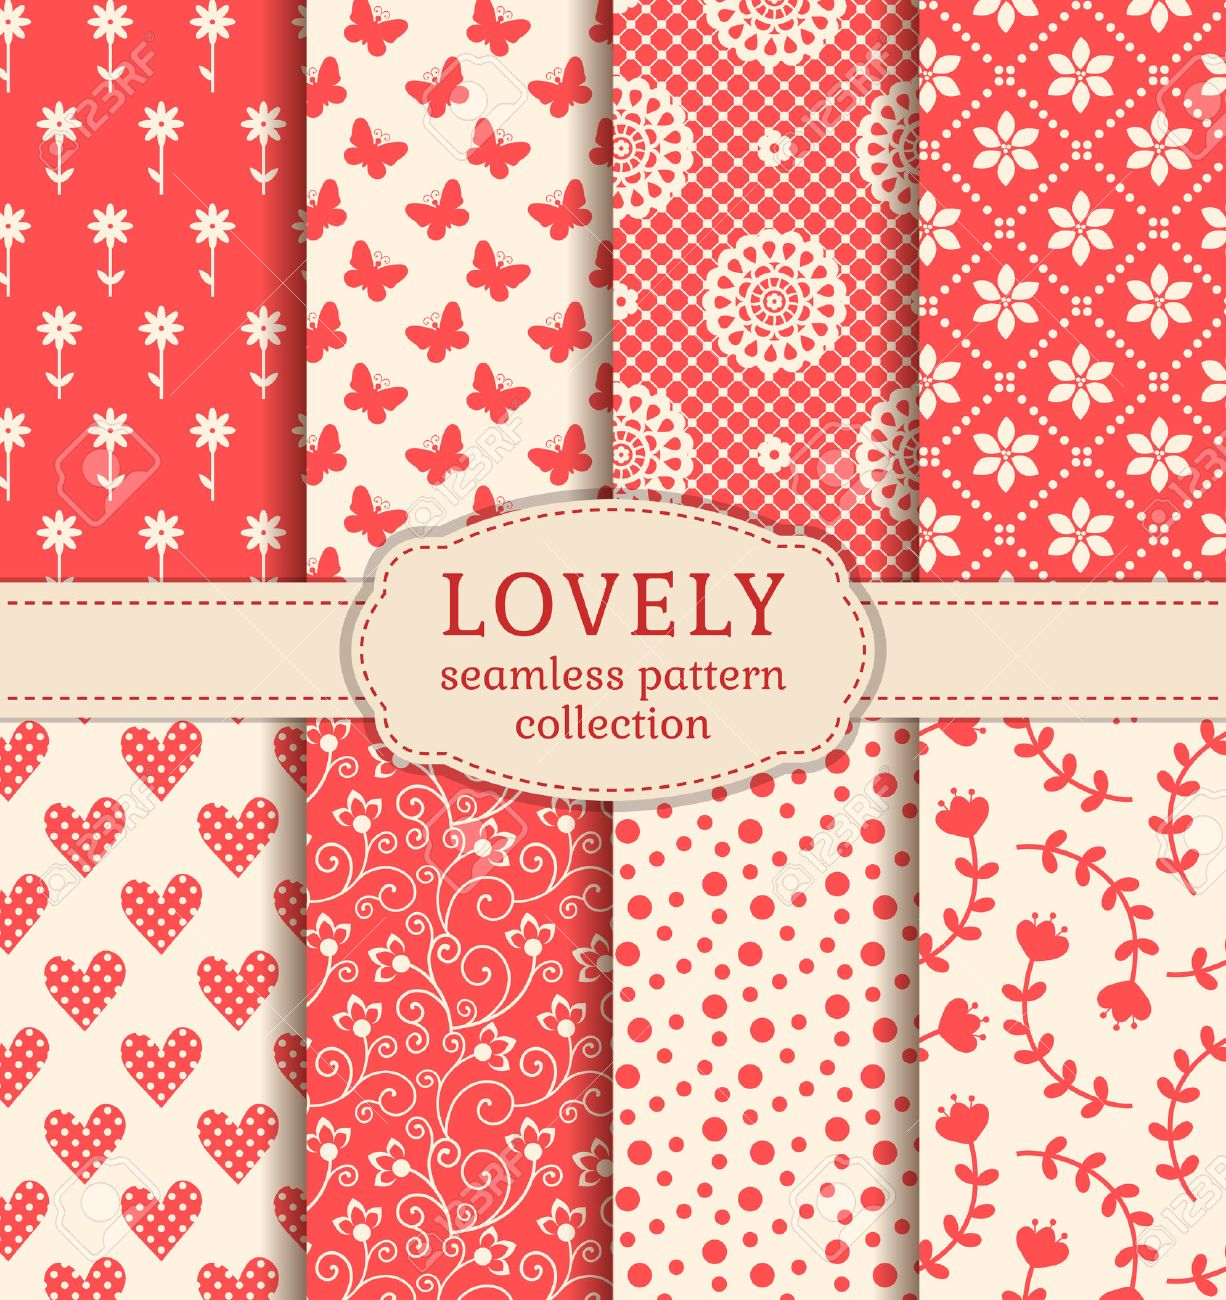 Set of cute patterns. Collection of seamless backgrounds in white and pink colors. Vector illustration. - 51619456